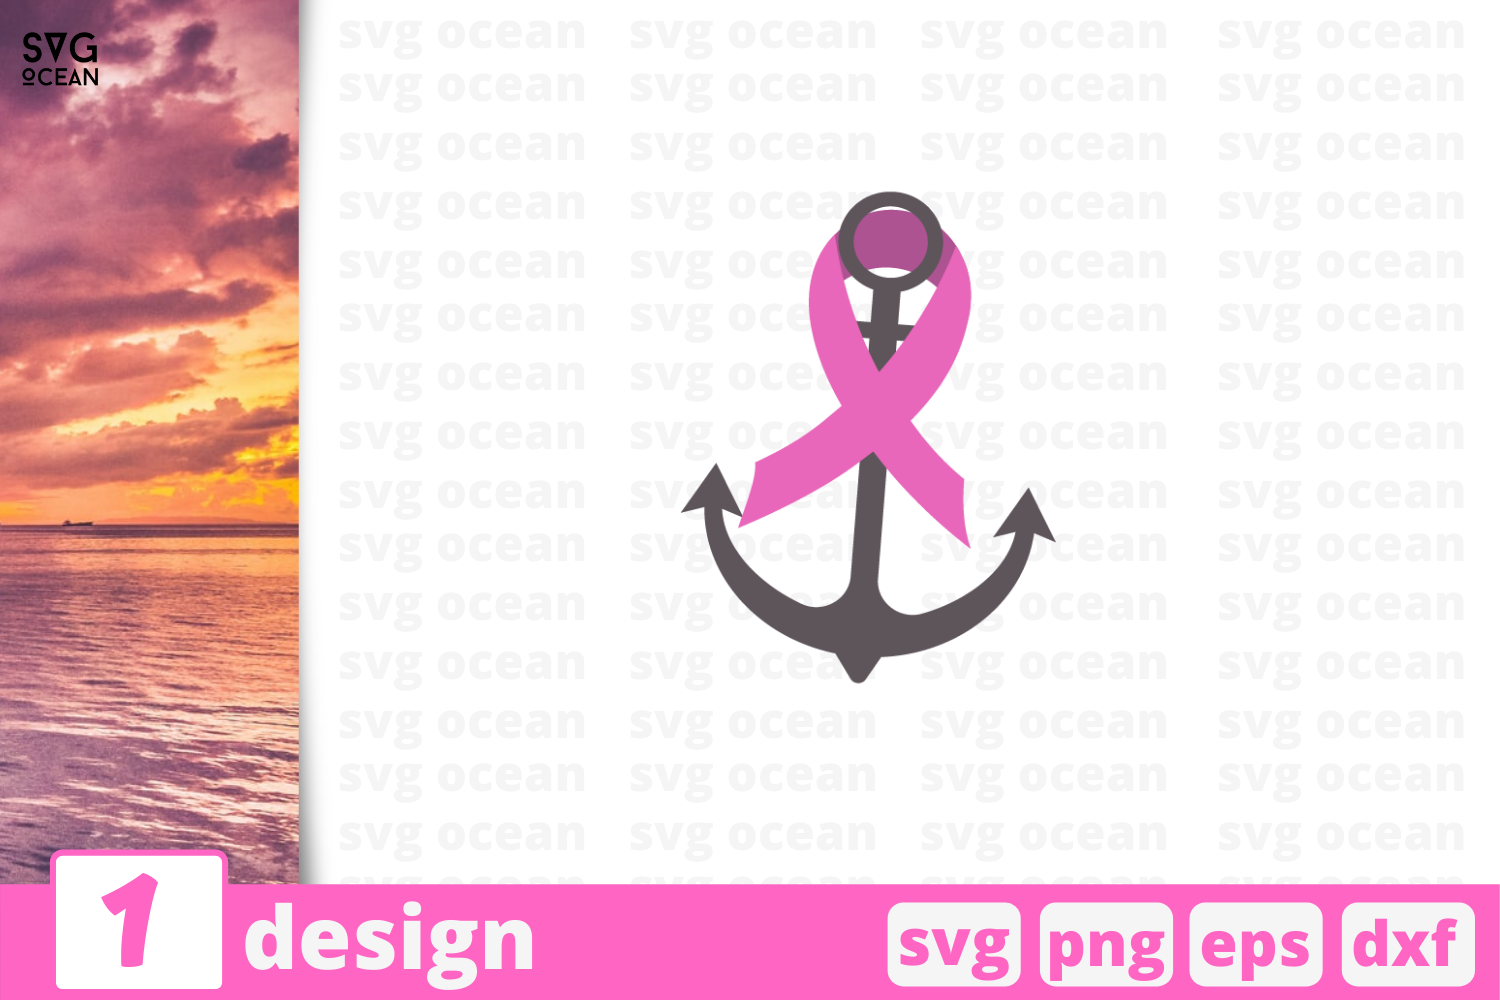 Download Free Anchor Graphic By Svgocean Creative Fabrica SVG Cut Files